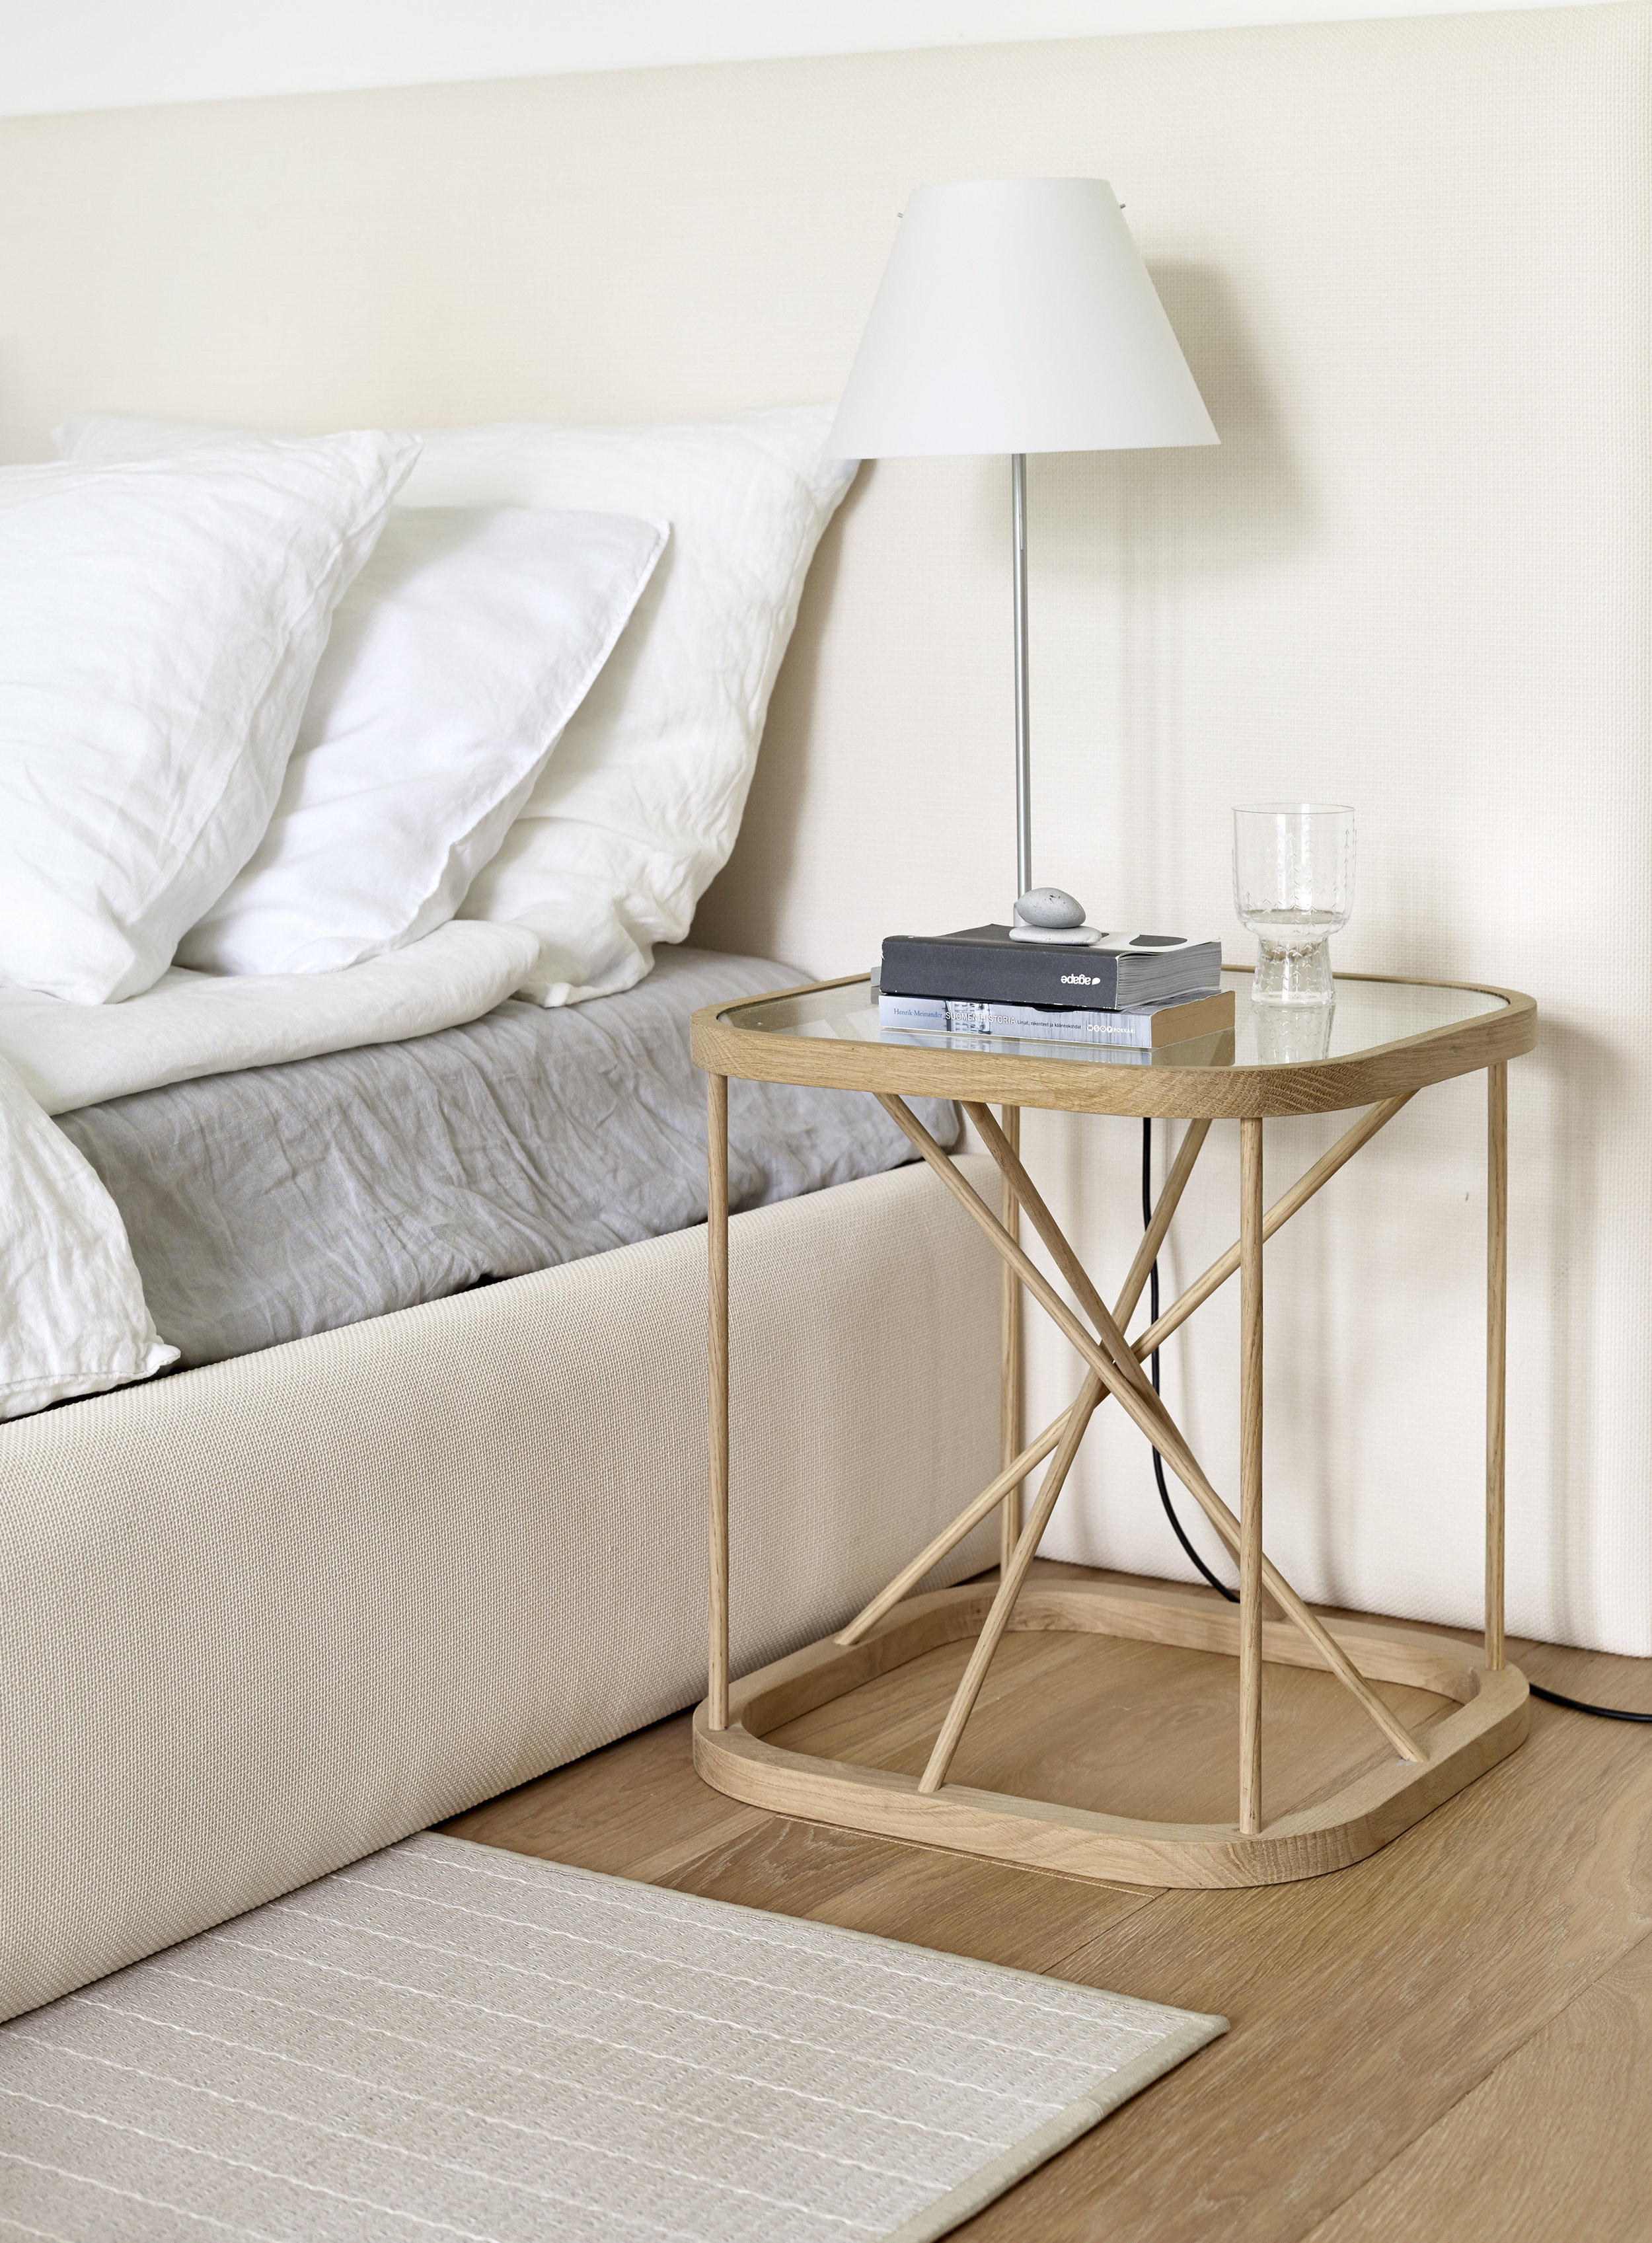 46700W  Twiggy table , 4010 Woodnotes Bed and 47001C Bed headboard, 124151 Line stone-white paper yarn carpet